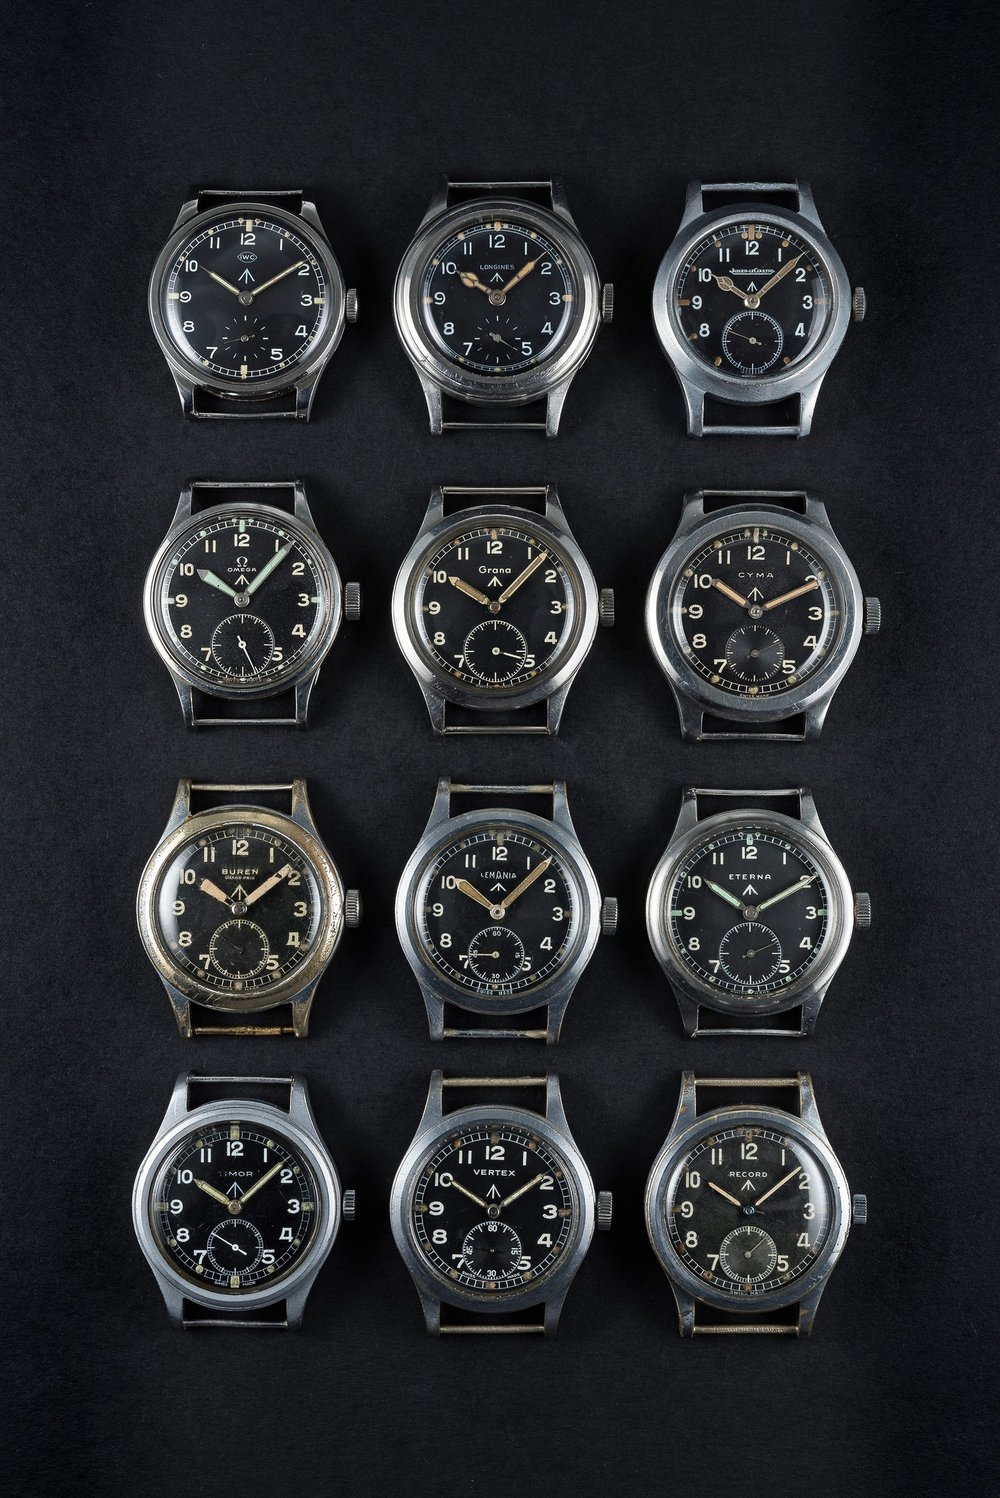 The famed 'Dirty Dozen' collection of military watches issued to the British MoD. Photo courtesy of Watches of Knightsbridge.